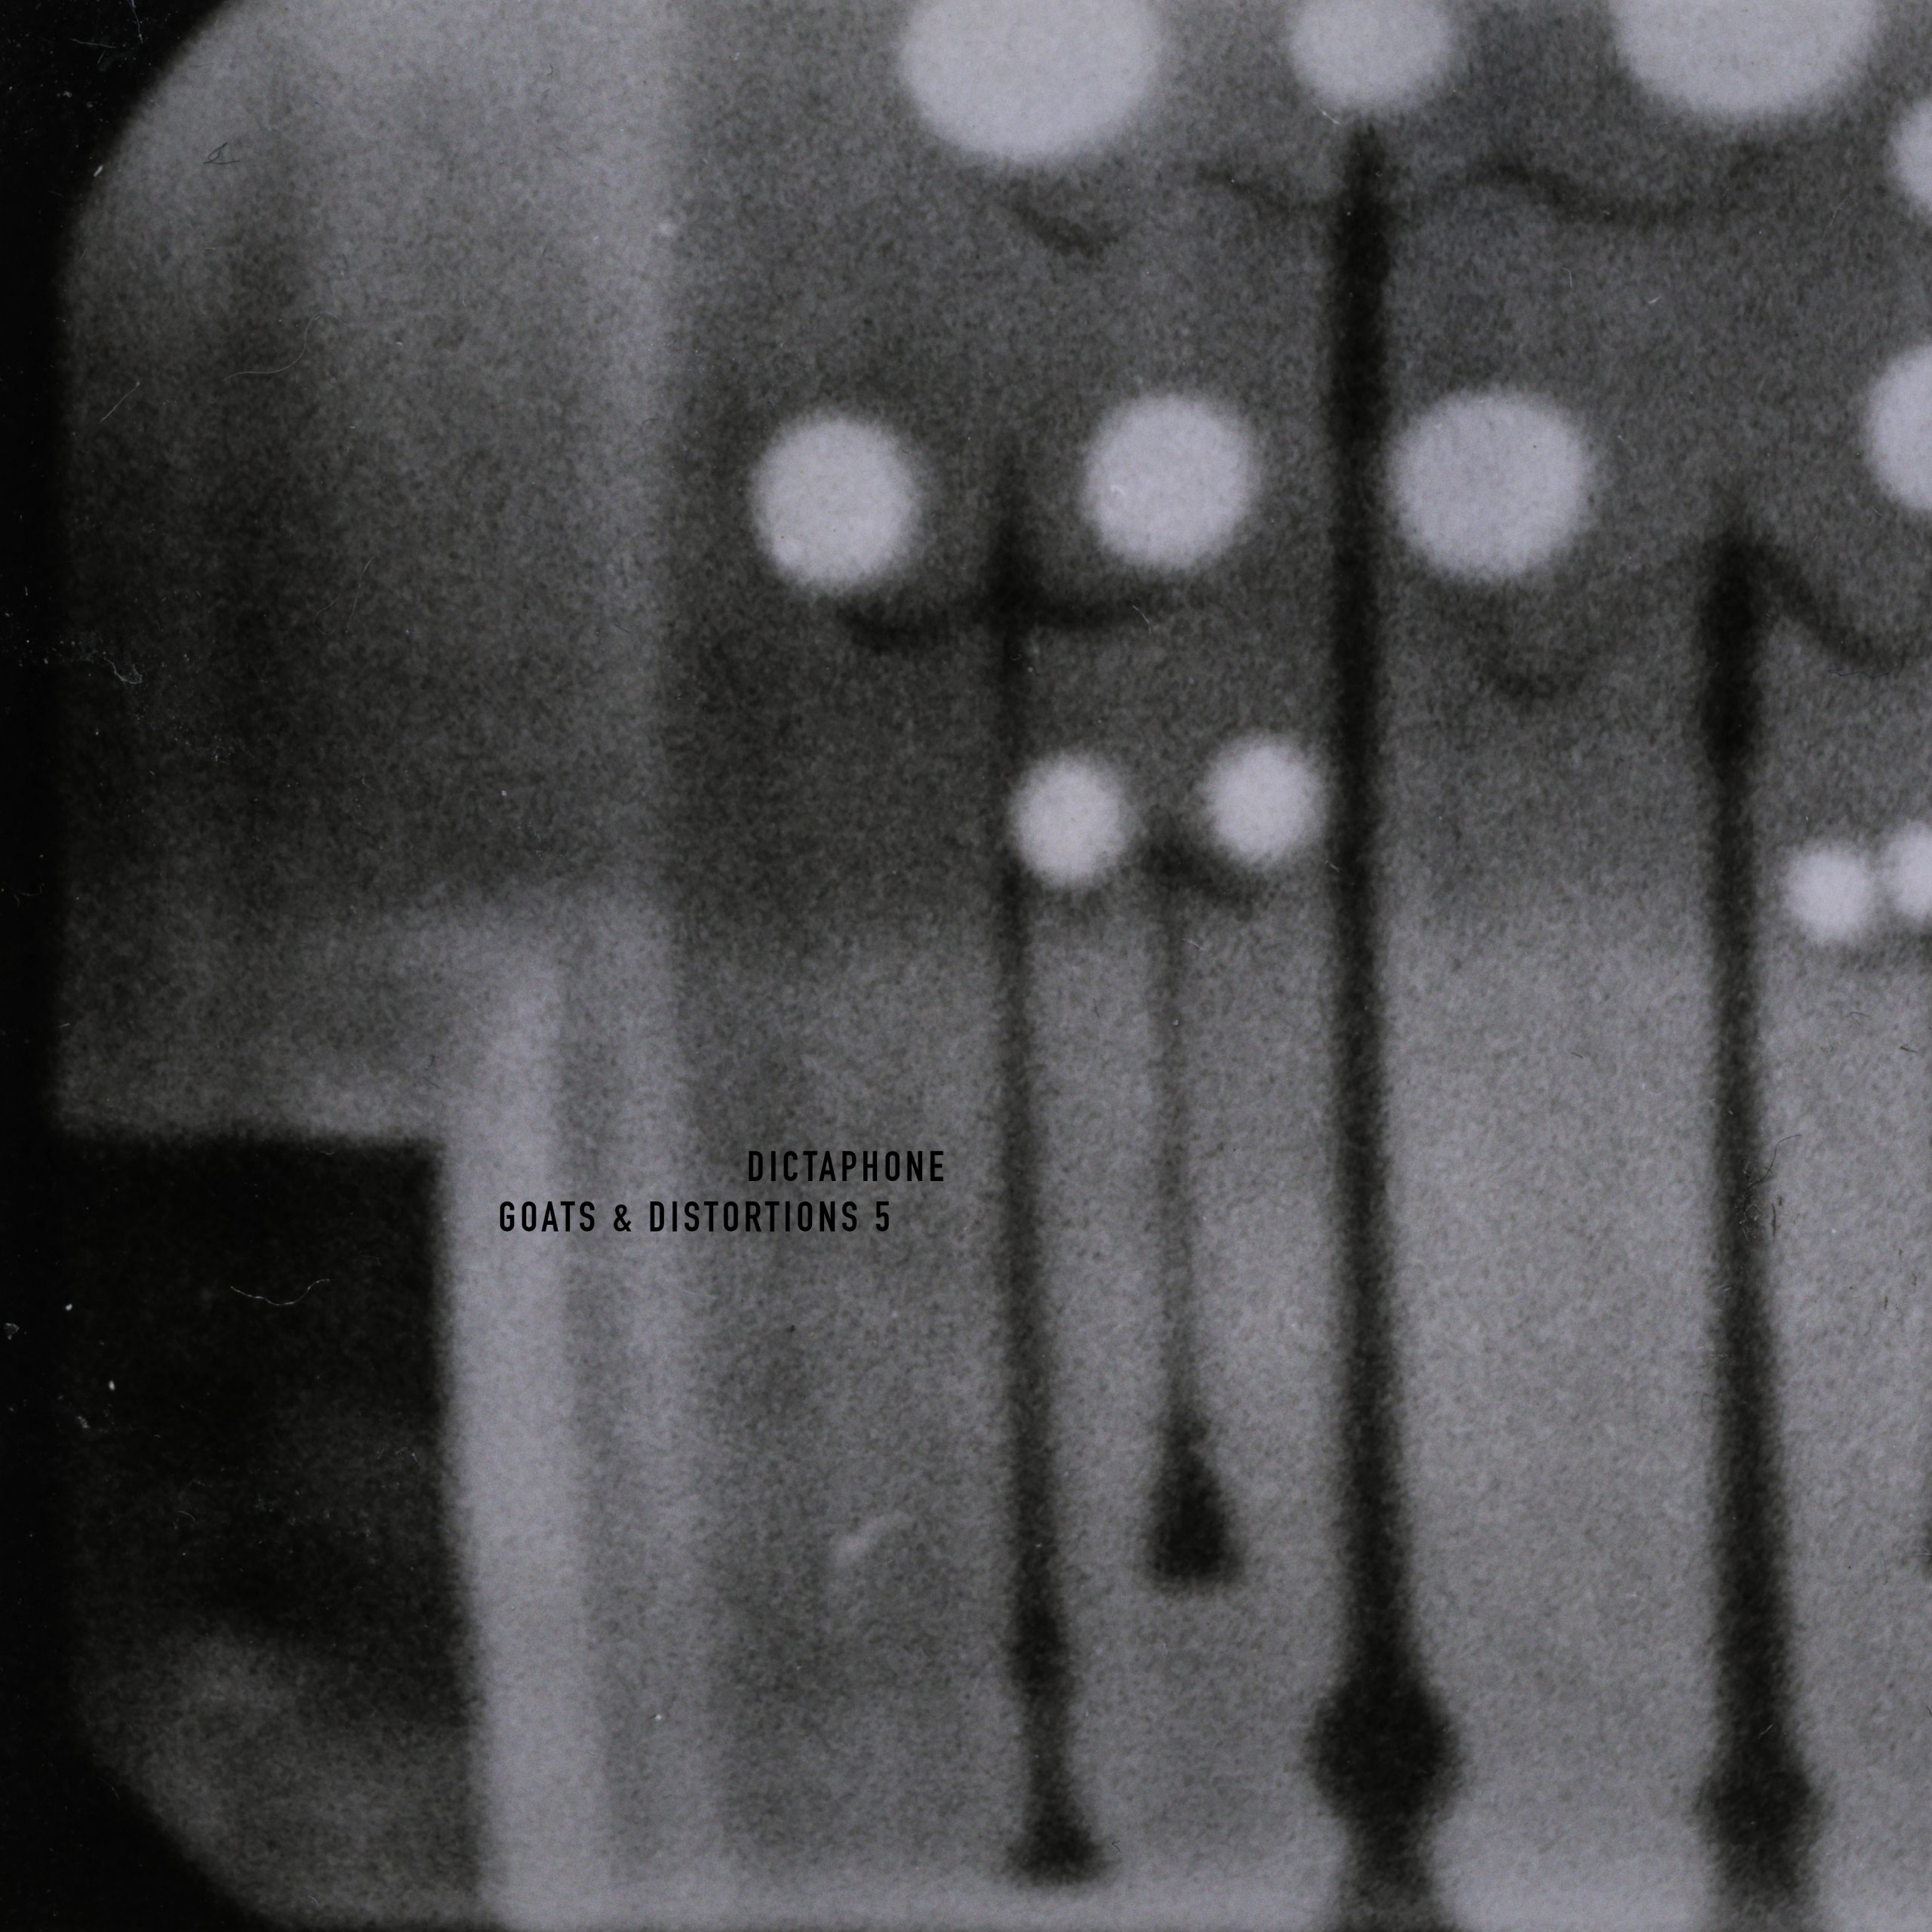 Dictaphone – Goats & Distortions 5